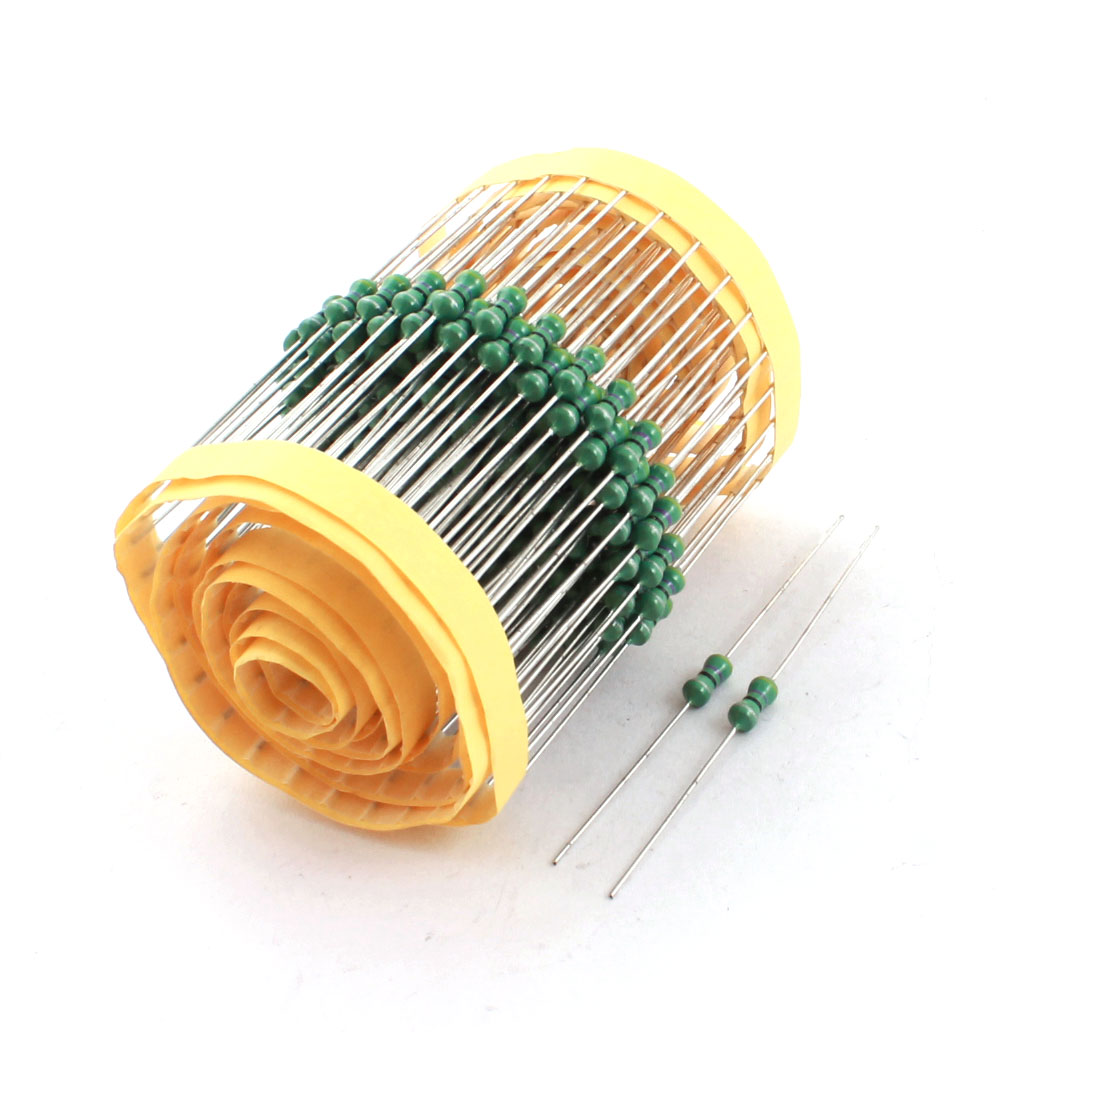 Motherboard 1/2W 47uH 10% 4x10mm 0410 Axial Color Ring Inductors 200pcs